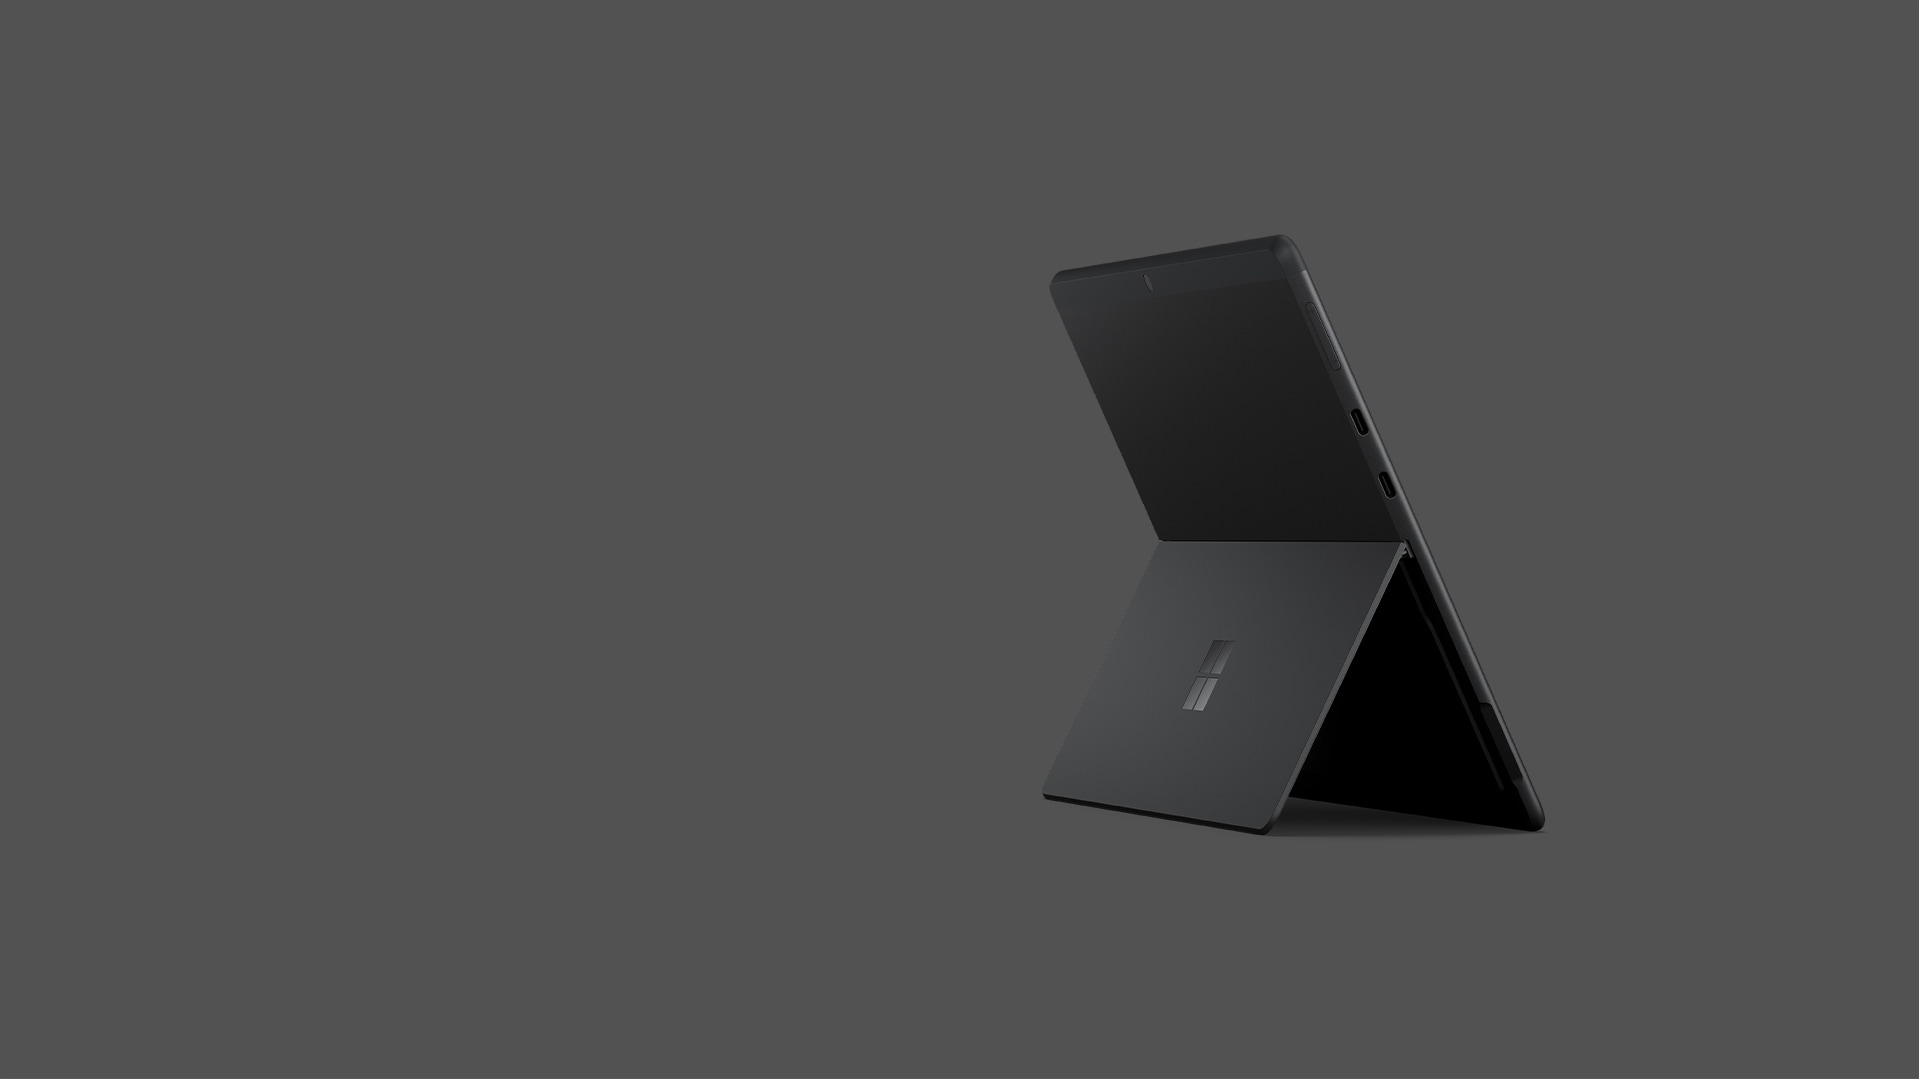 A Surface Pro X rests upon a stand against a black background.